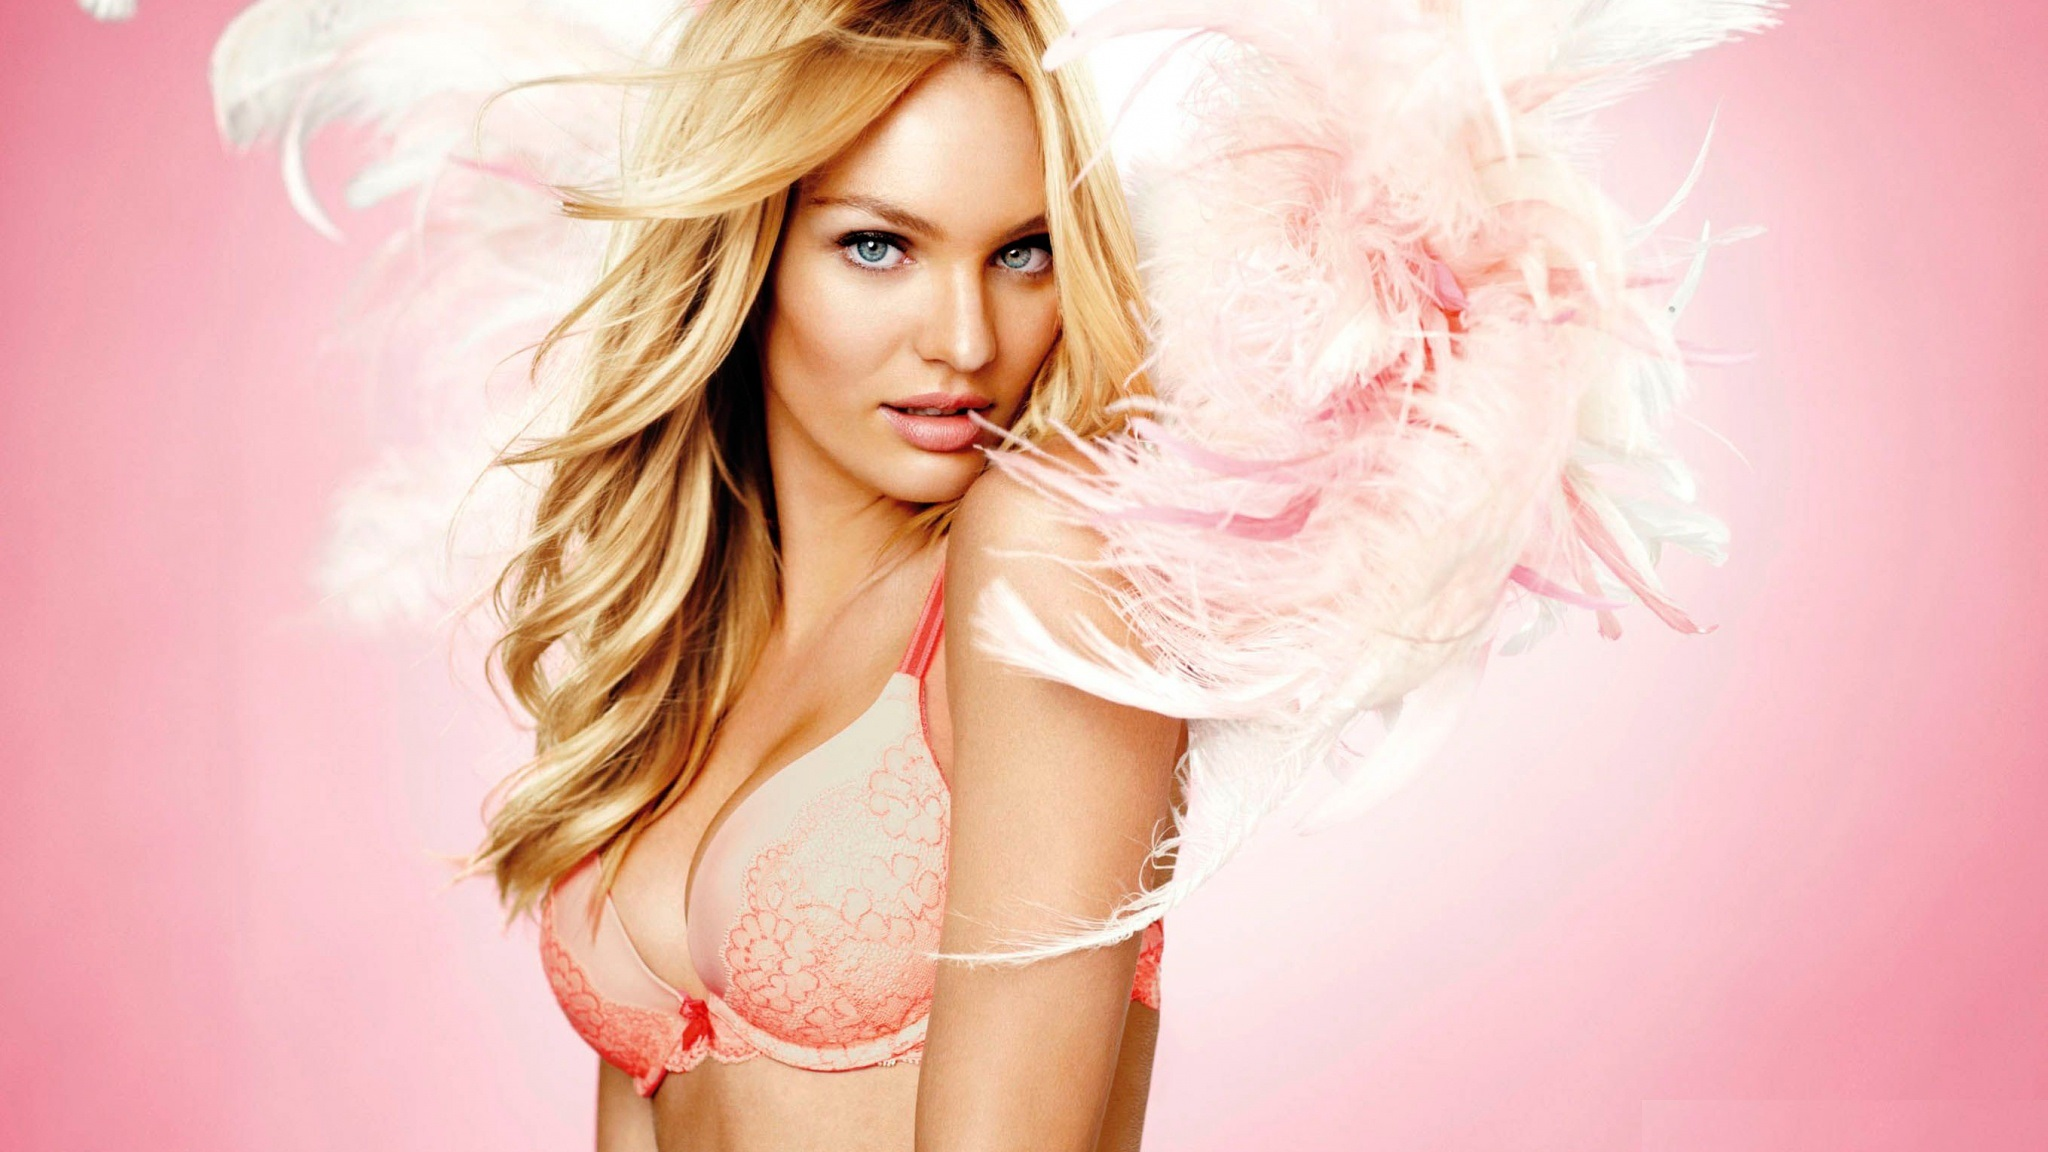 candice-swanepoel-photoshoot